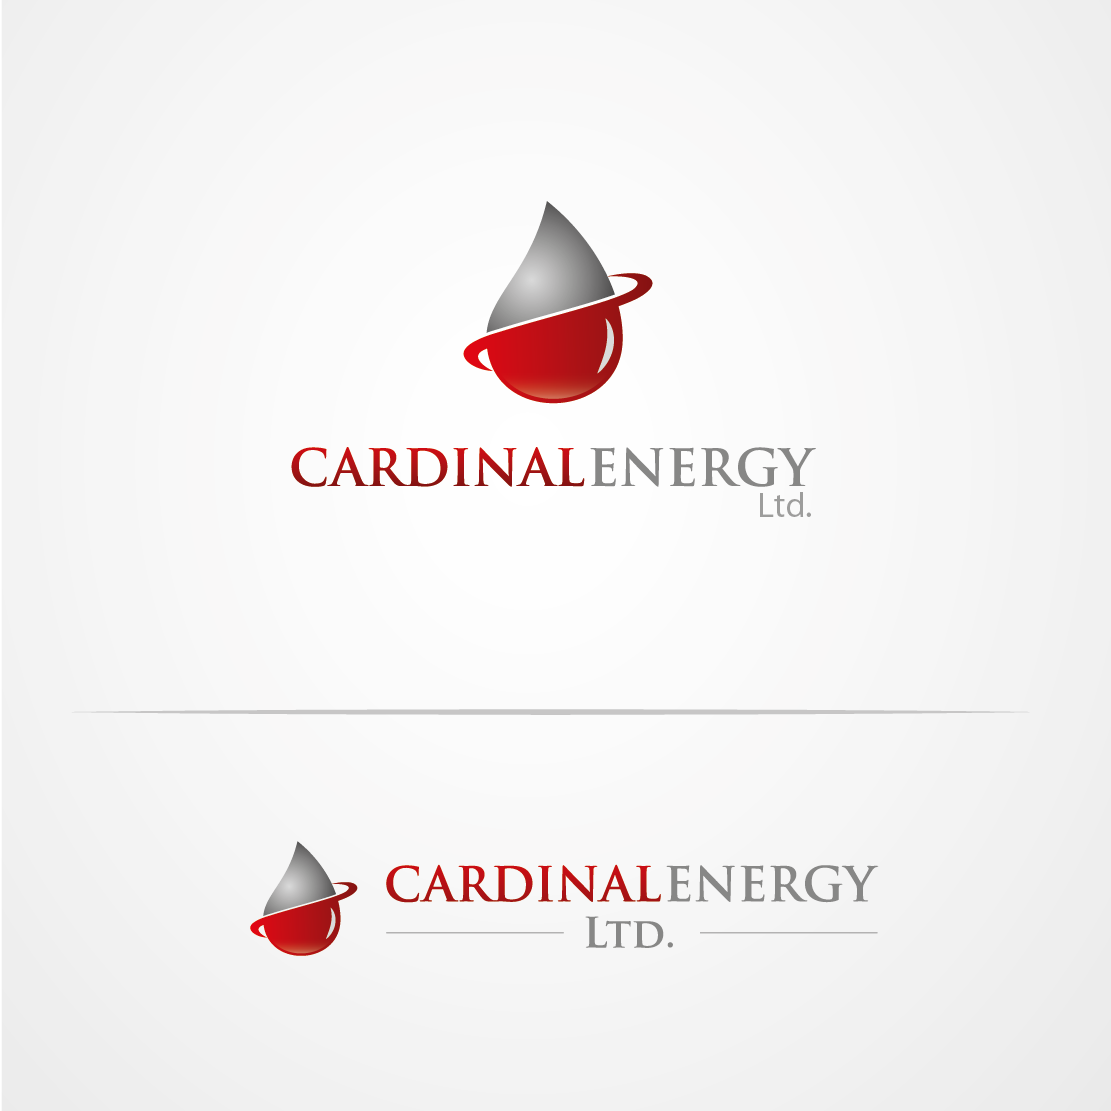 New logo wanted for Cardinal Energy Ltd.